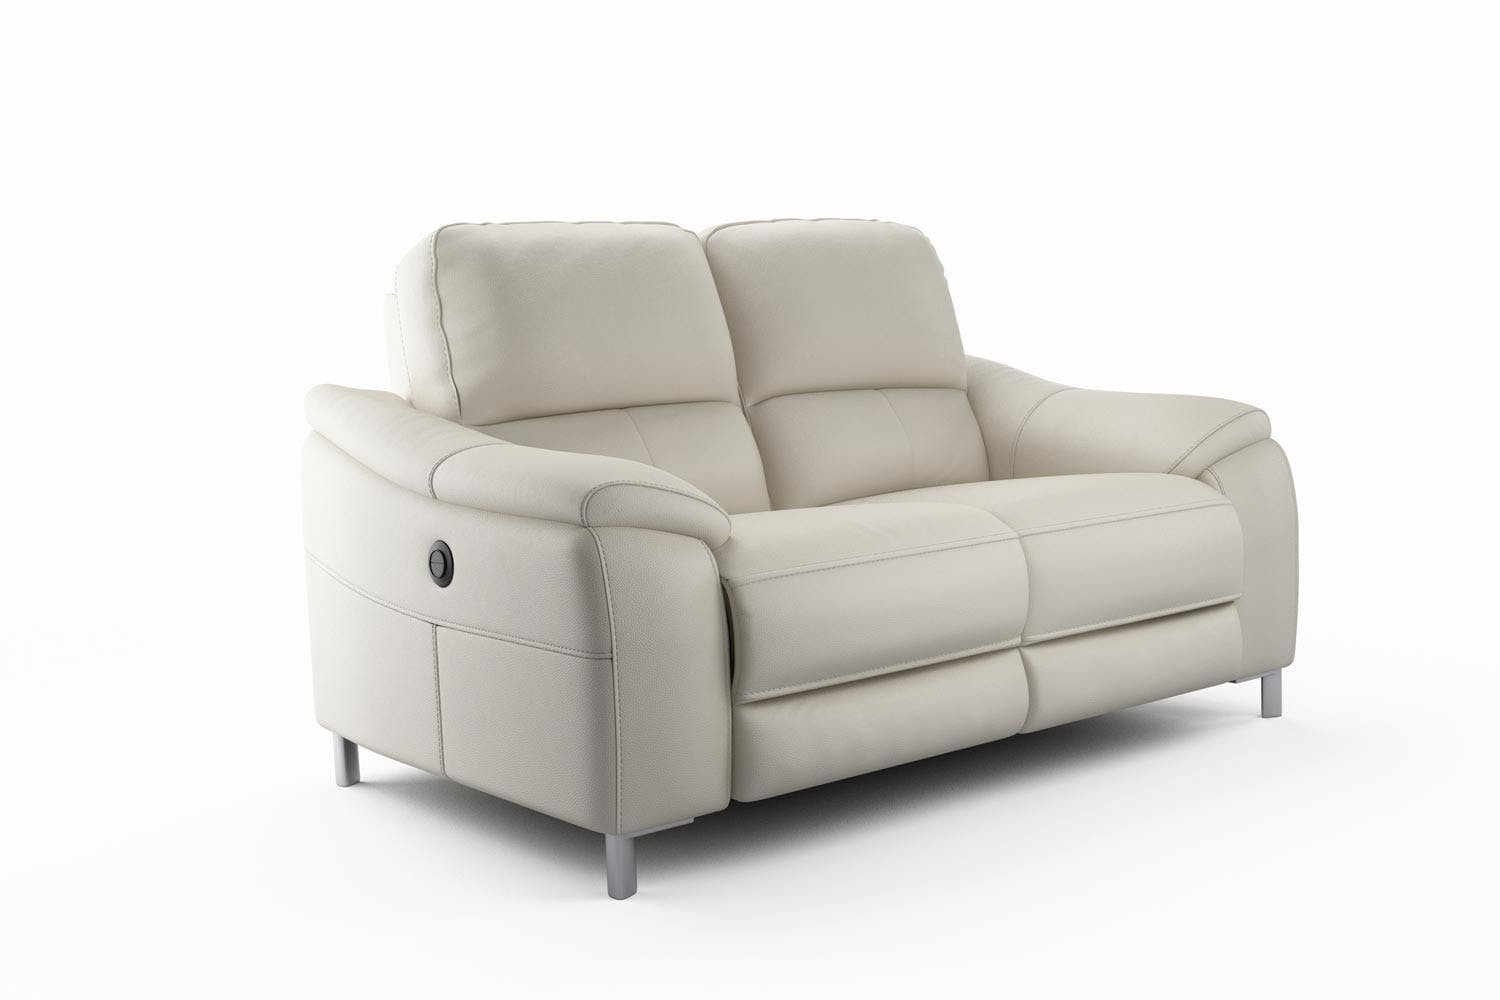 Yvezza 2 Seater Electric Recliner Sofa Grey